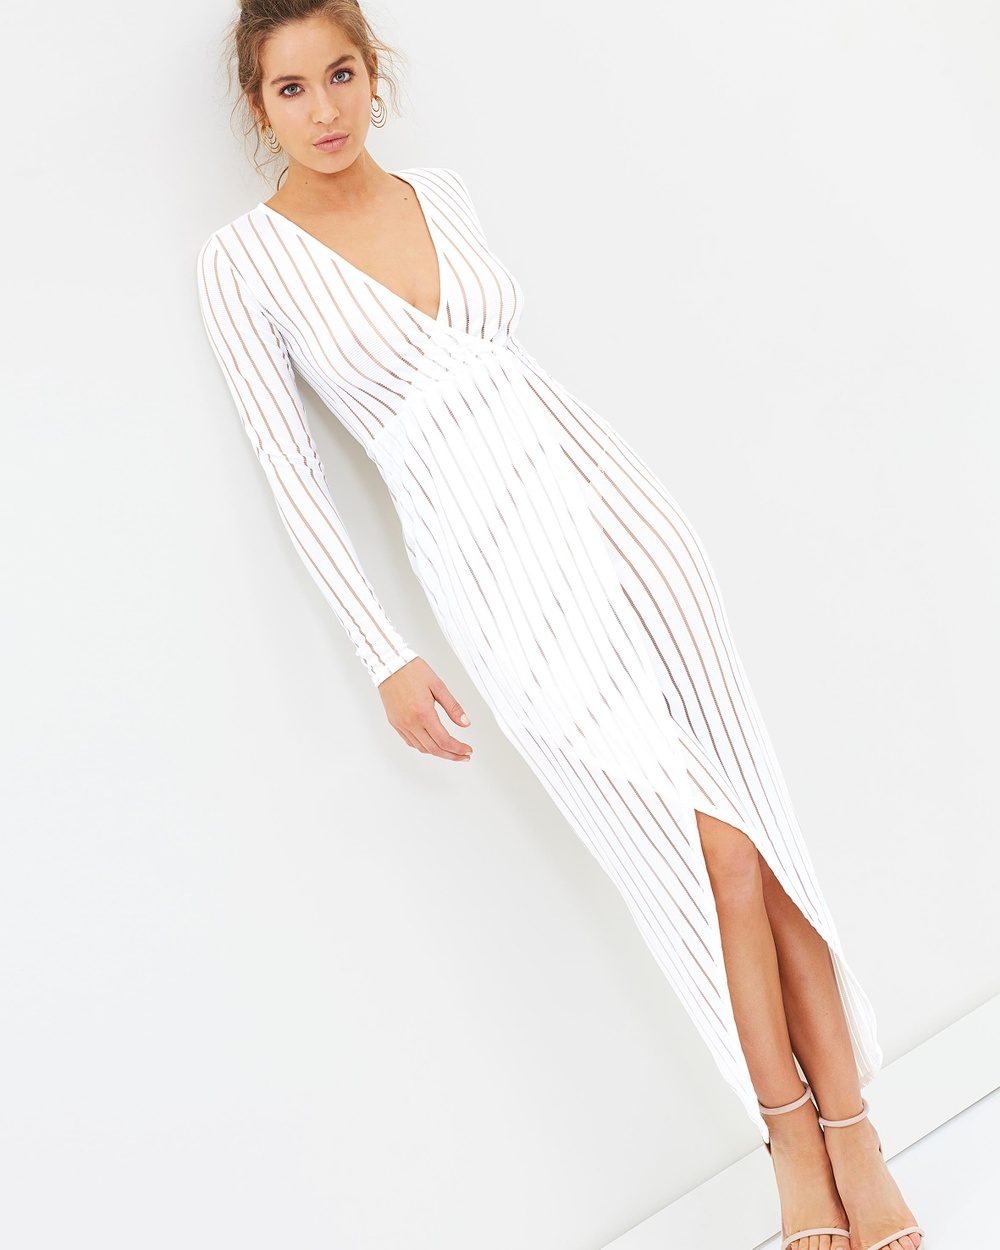 Missguided LS Wrap Sheer Stripe Maxi Dress Dresses White LS Wrap Sheer Stripe Maxi Dress